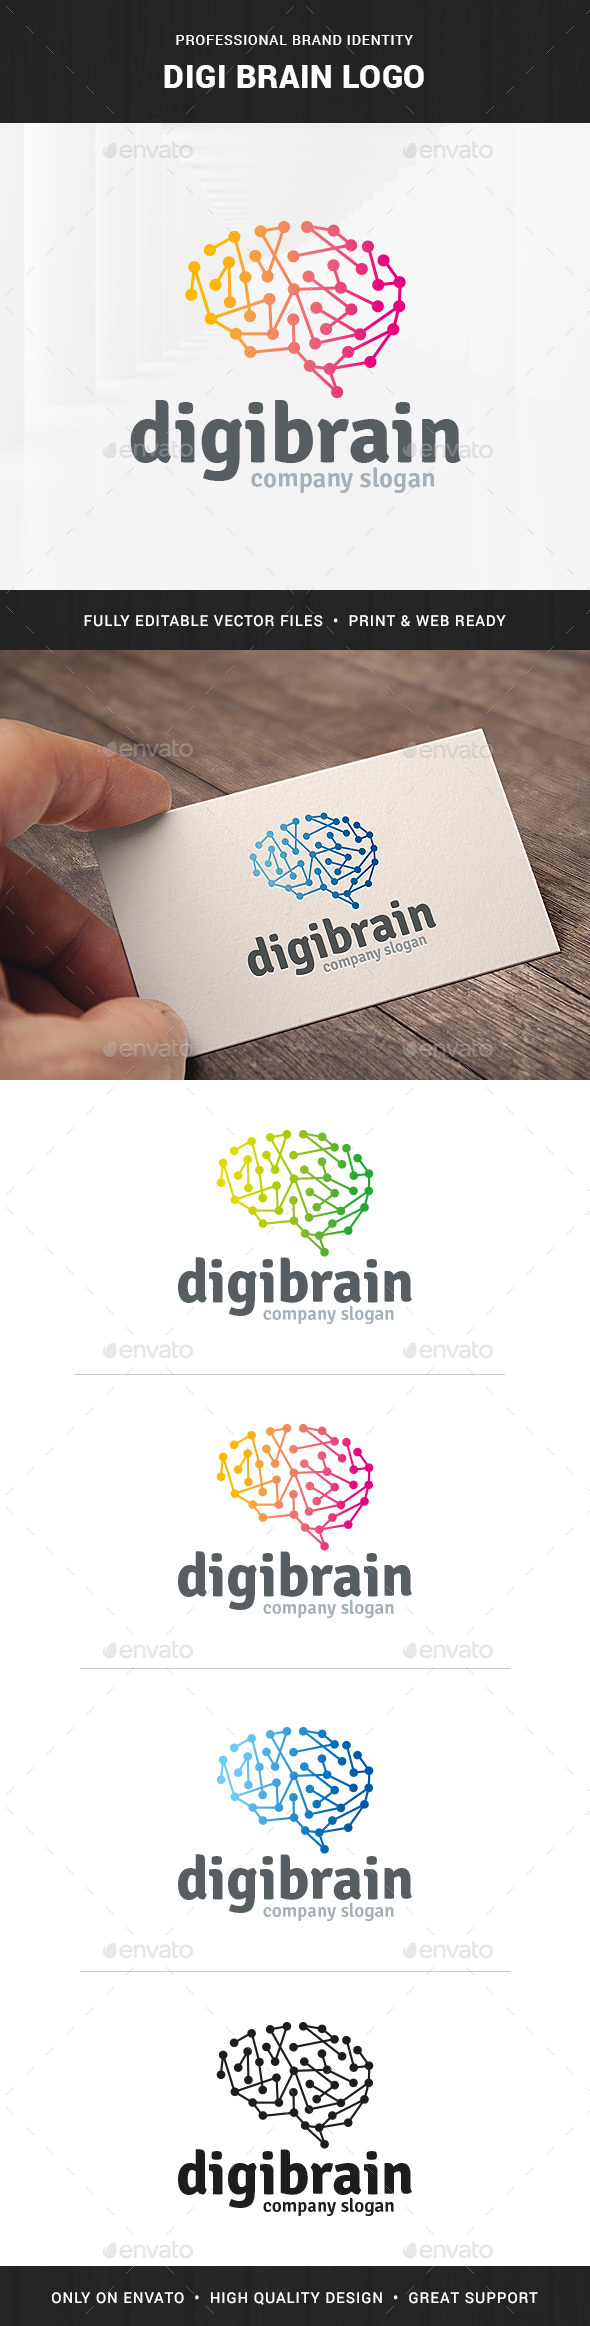 Digi Brain Logo Template - Abstract Logo Templates